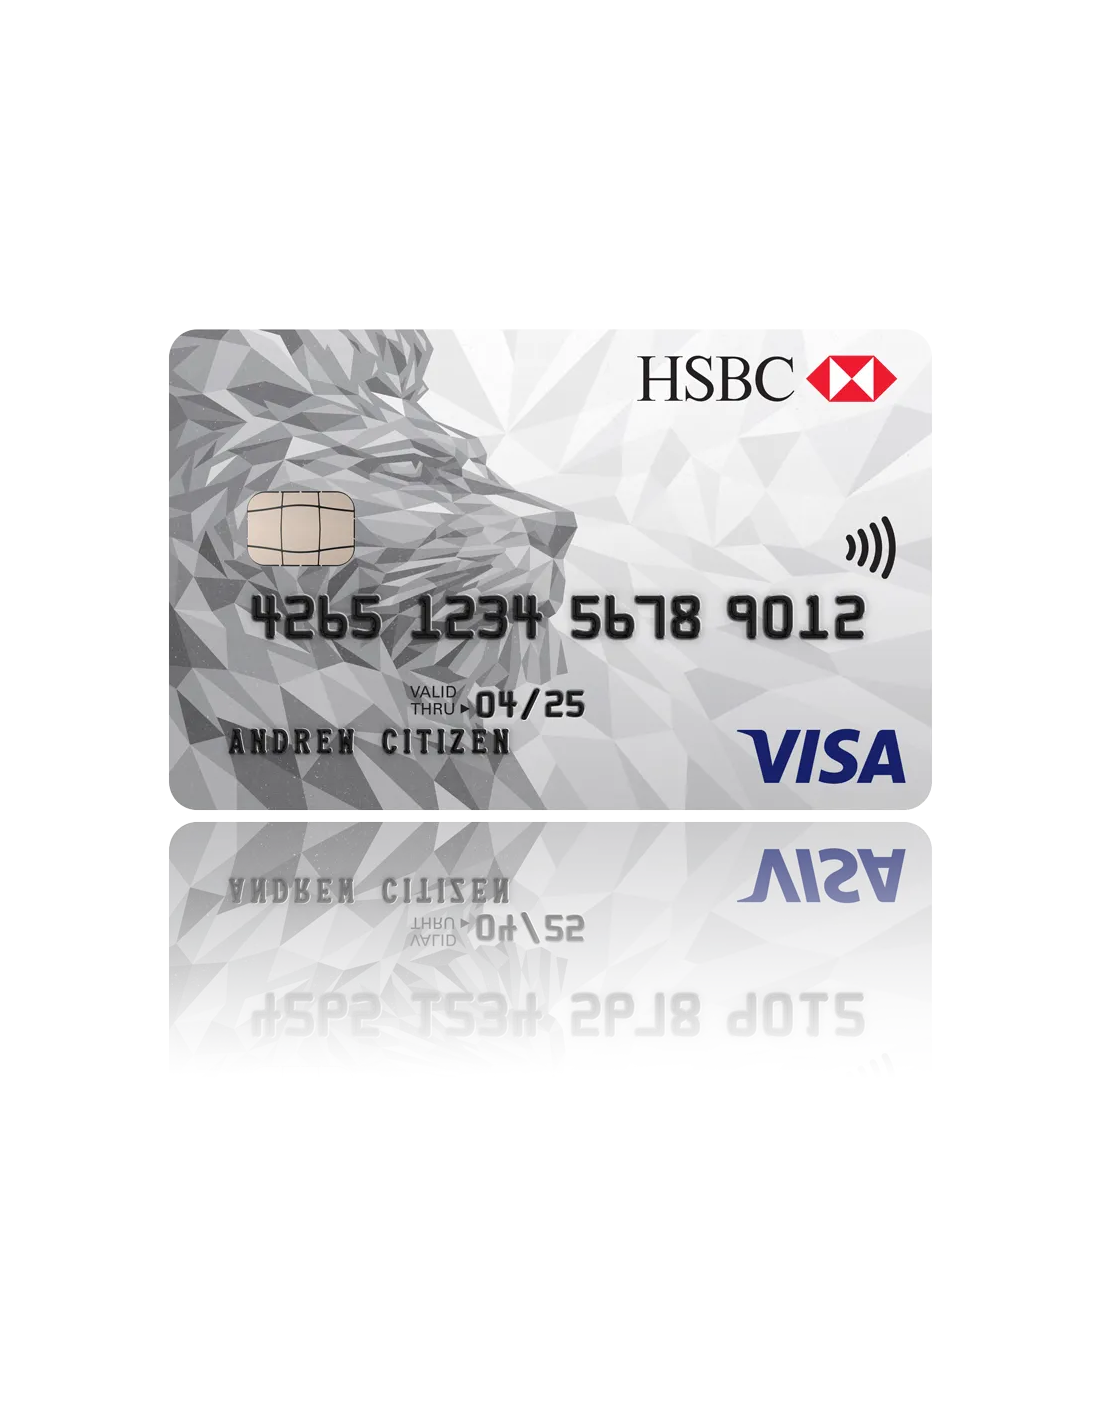 Virtual Credit Card For Paypal Verification 15 00 Hot 1 Year With Instant Paypal Code Purchase Our Vcc Virtual Credit Card Credit Card Machine Card Machine